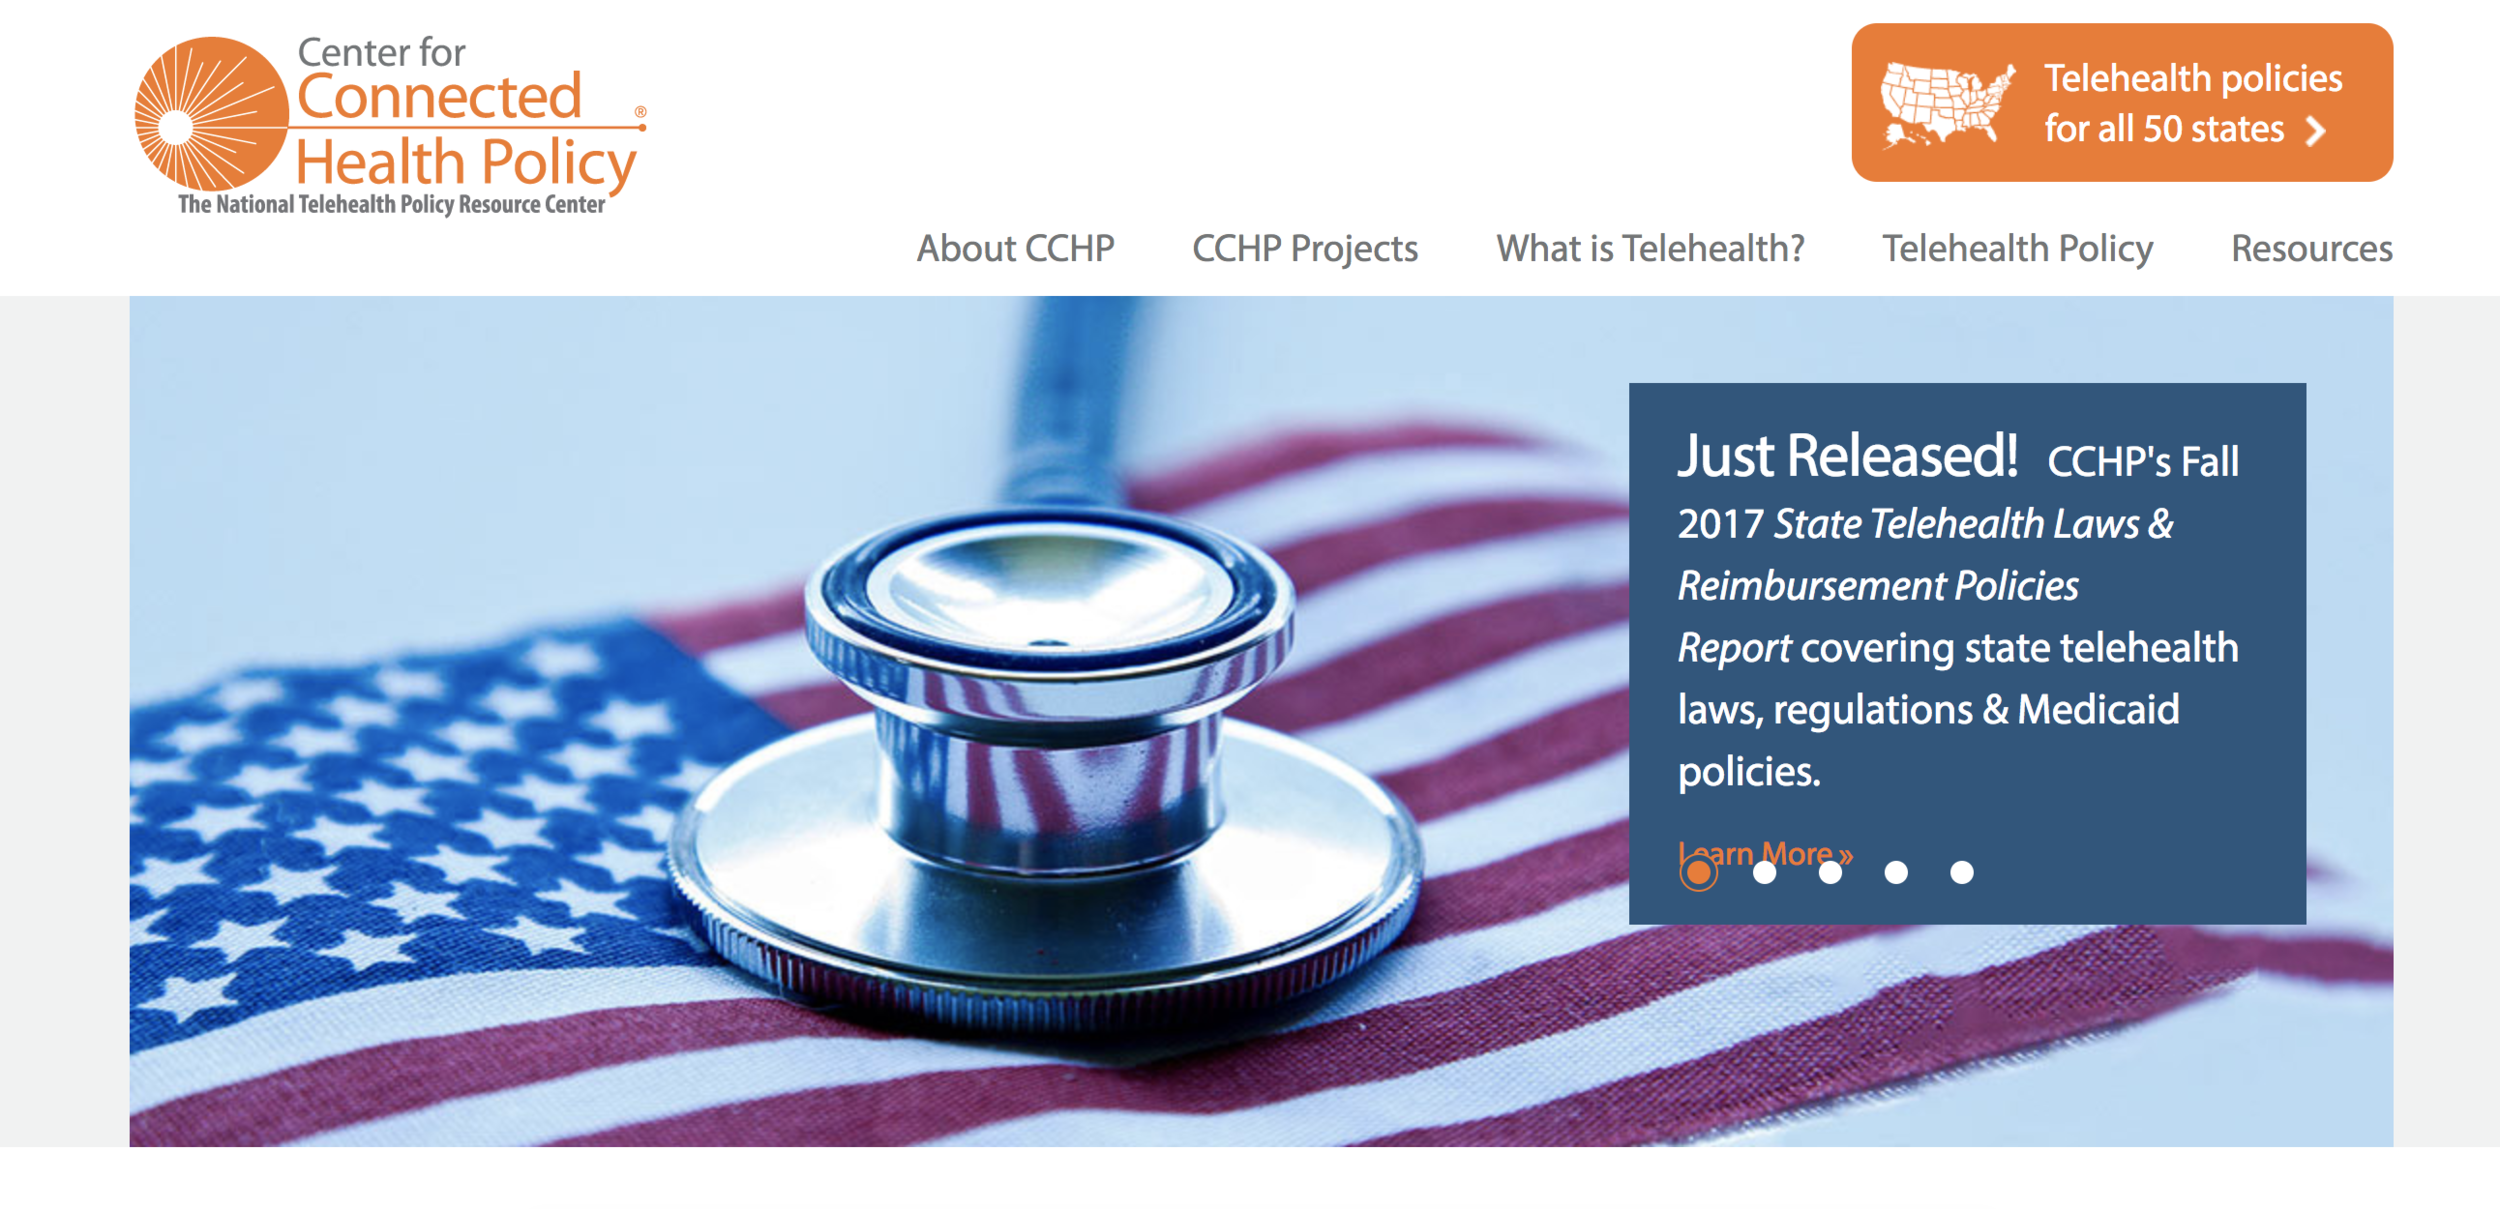 src: Center For Connected Health Policy (http://www.cchpca.org/)